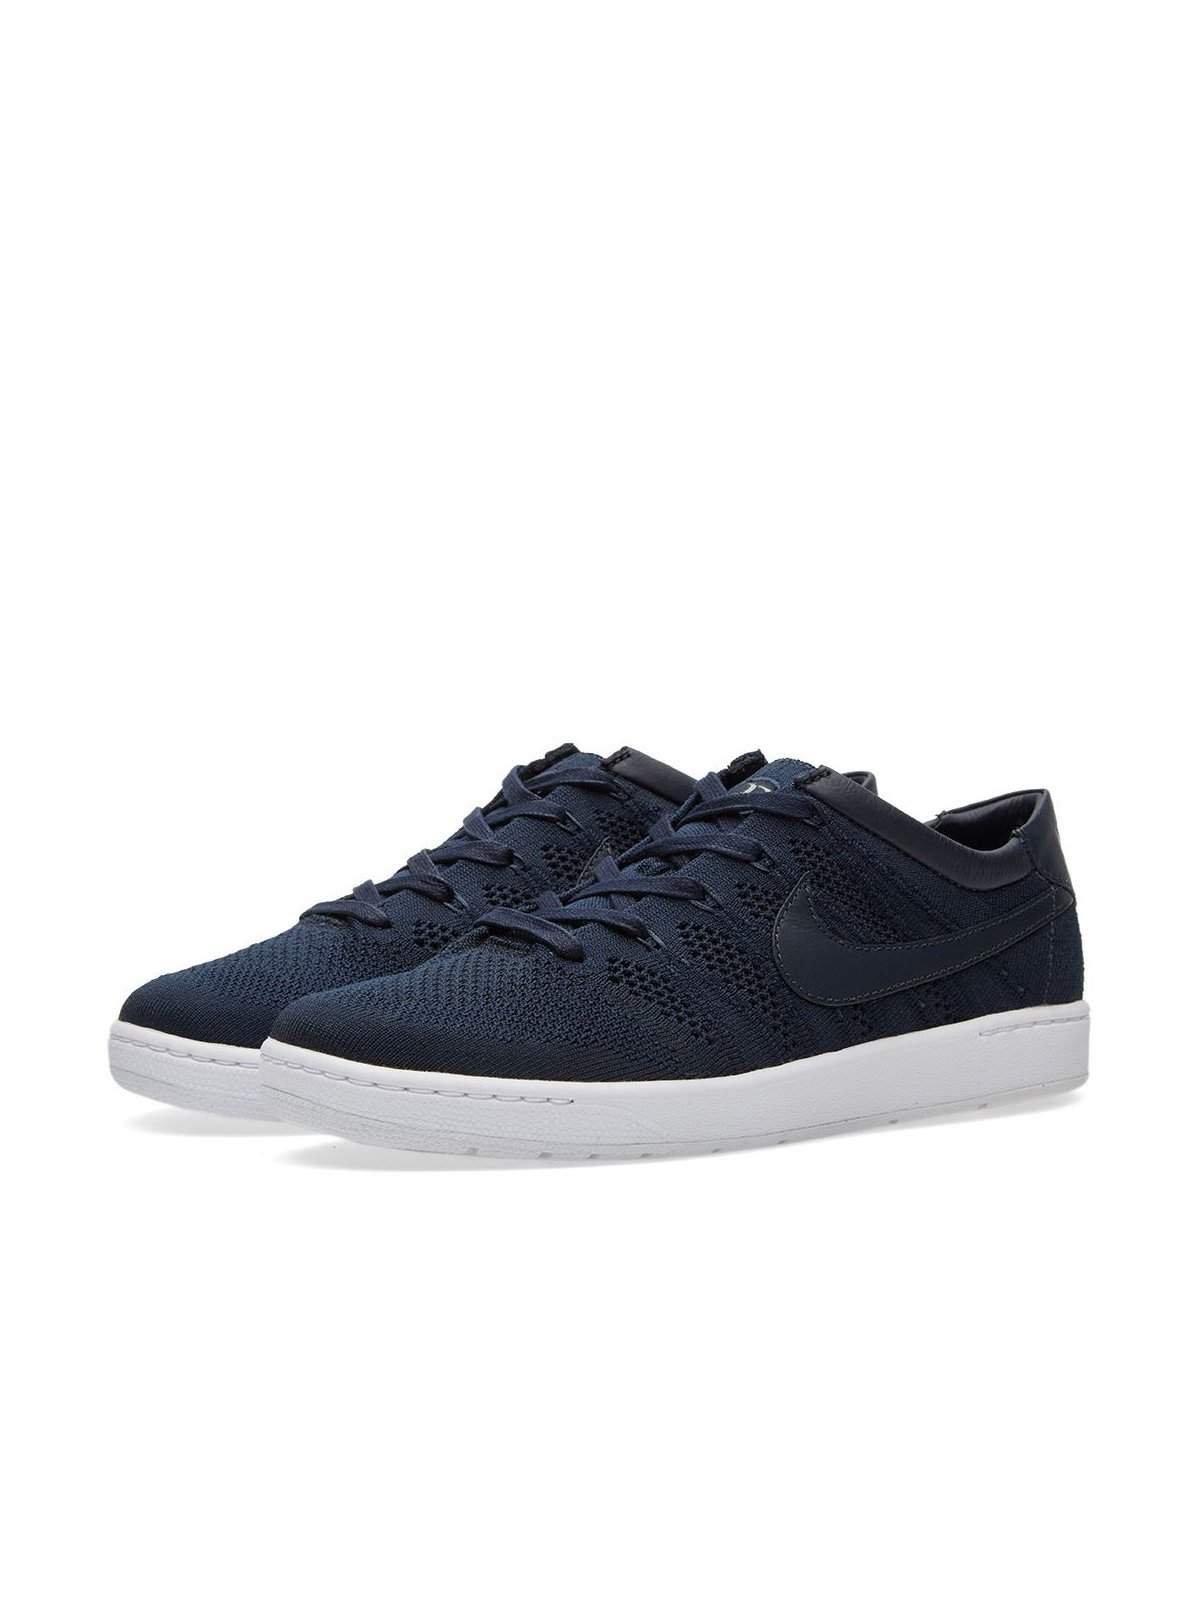 Nikelab Zoom Tennis Classic Ultra Flyknit RF Dark Obsidian White - MORE by Morello Indonesia